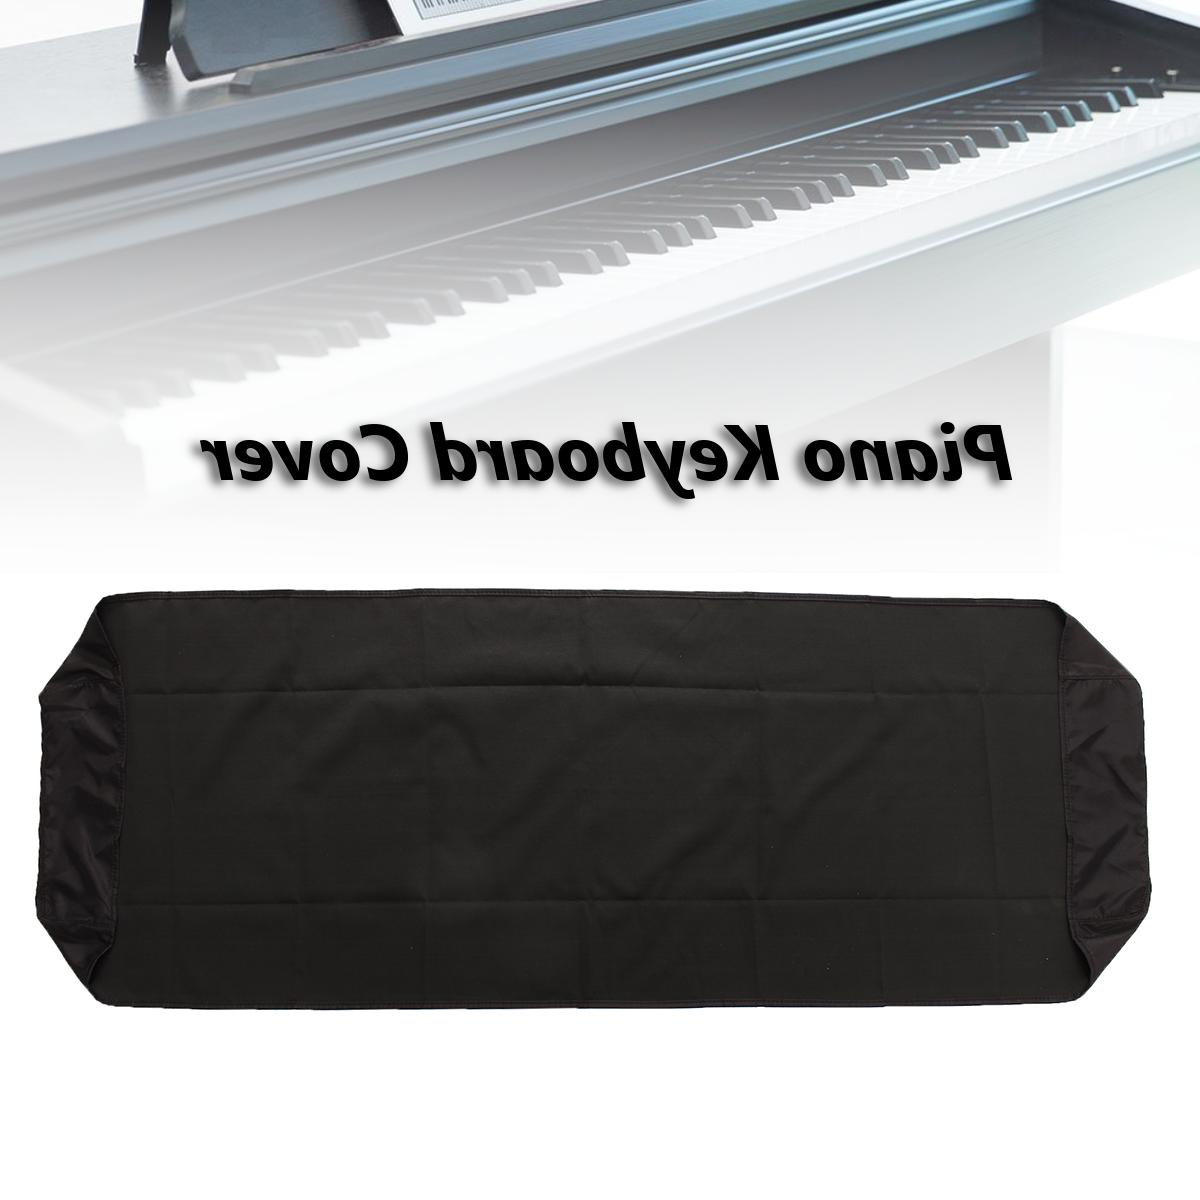 88key electronic piano keyboard cover protector dustproof